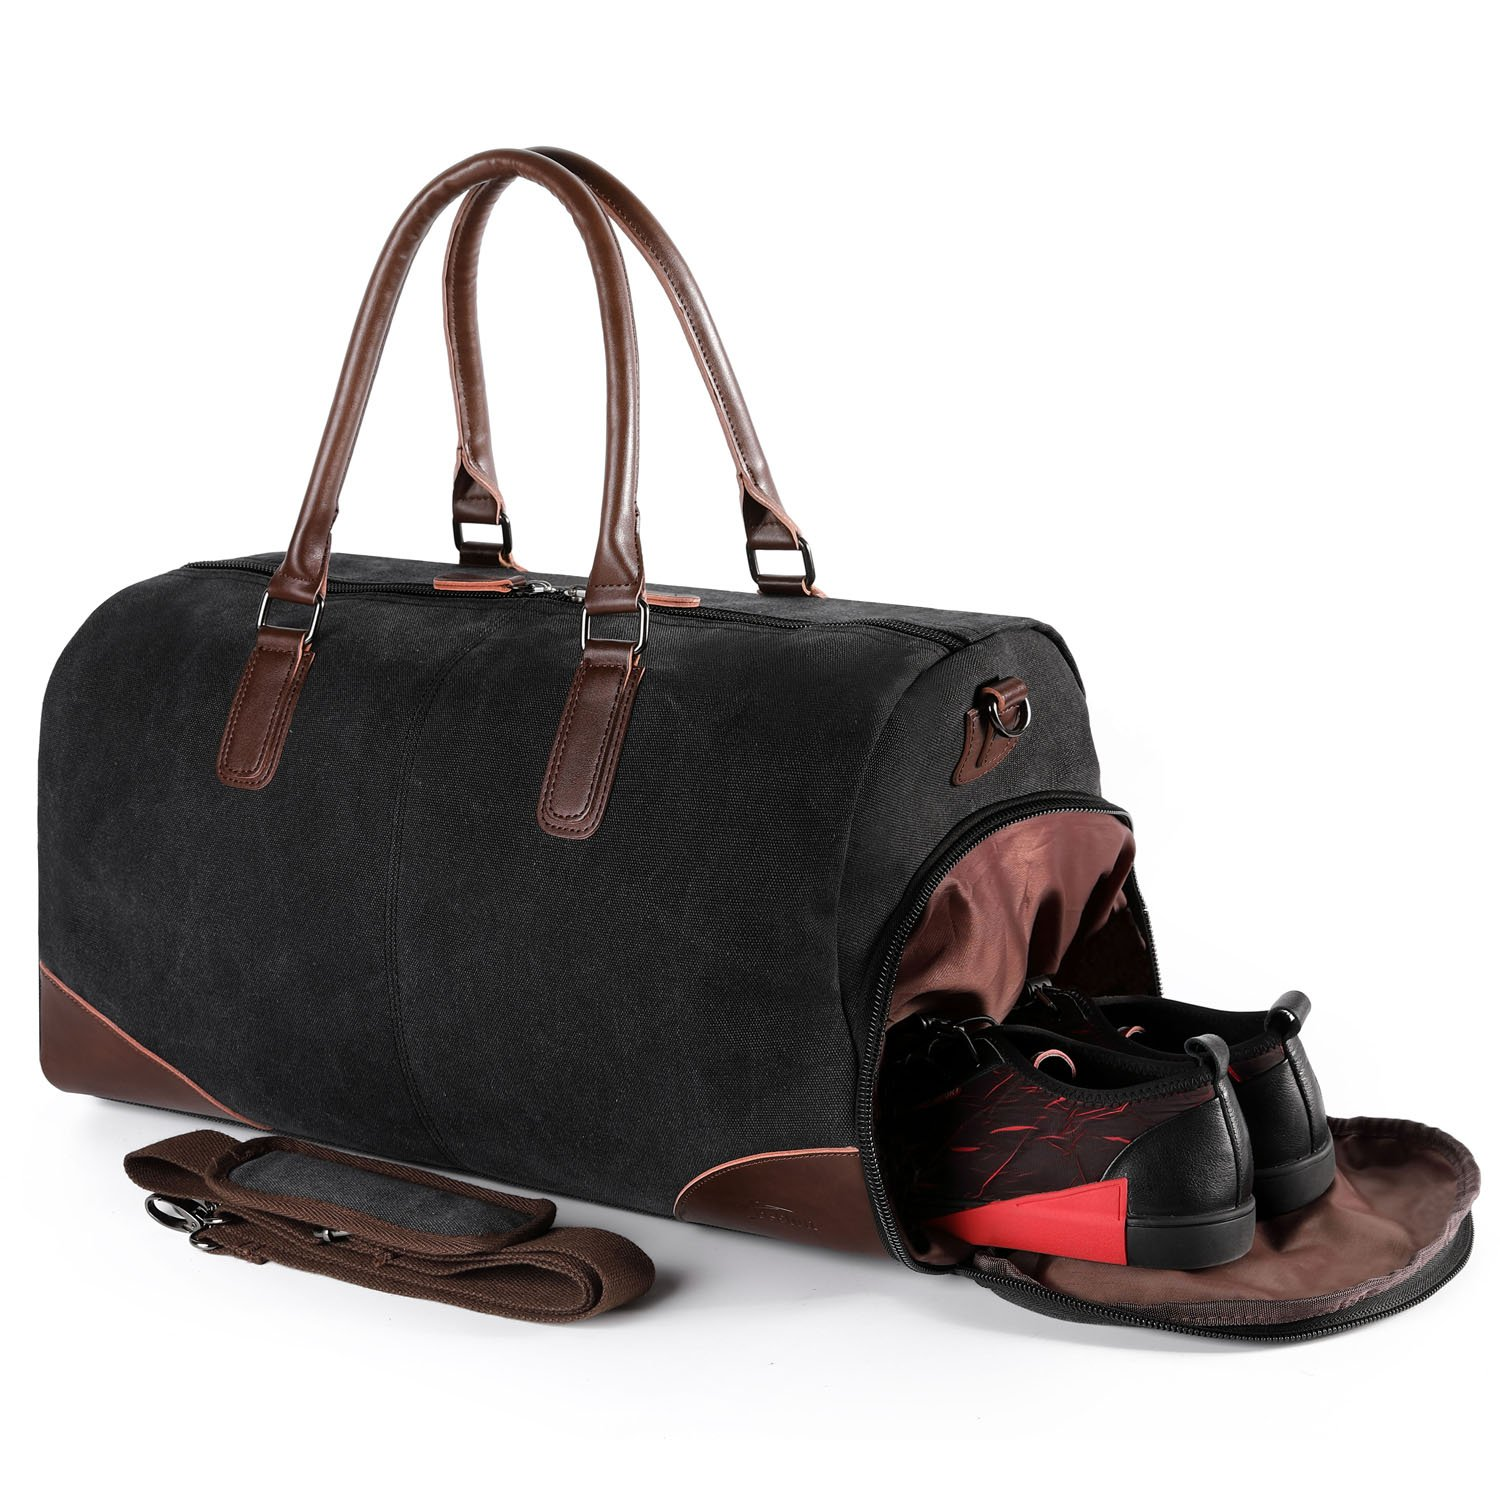 Travel Flight Bag, Leather Canvas Tote Bags with Laptop Compartment